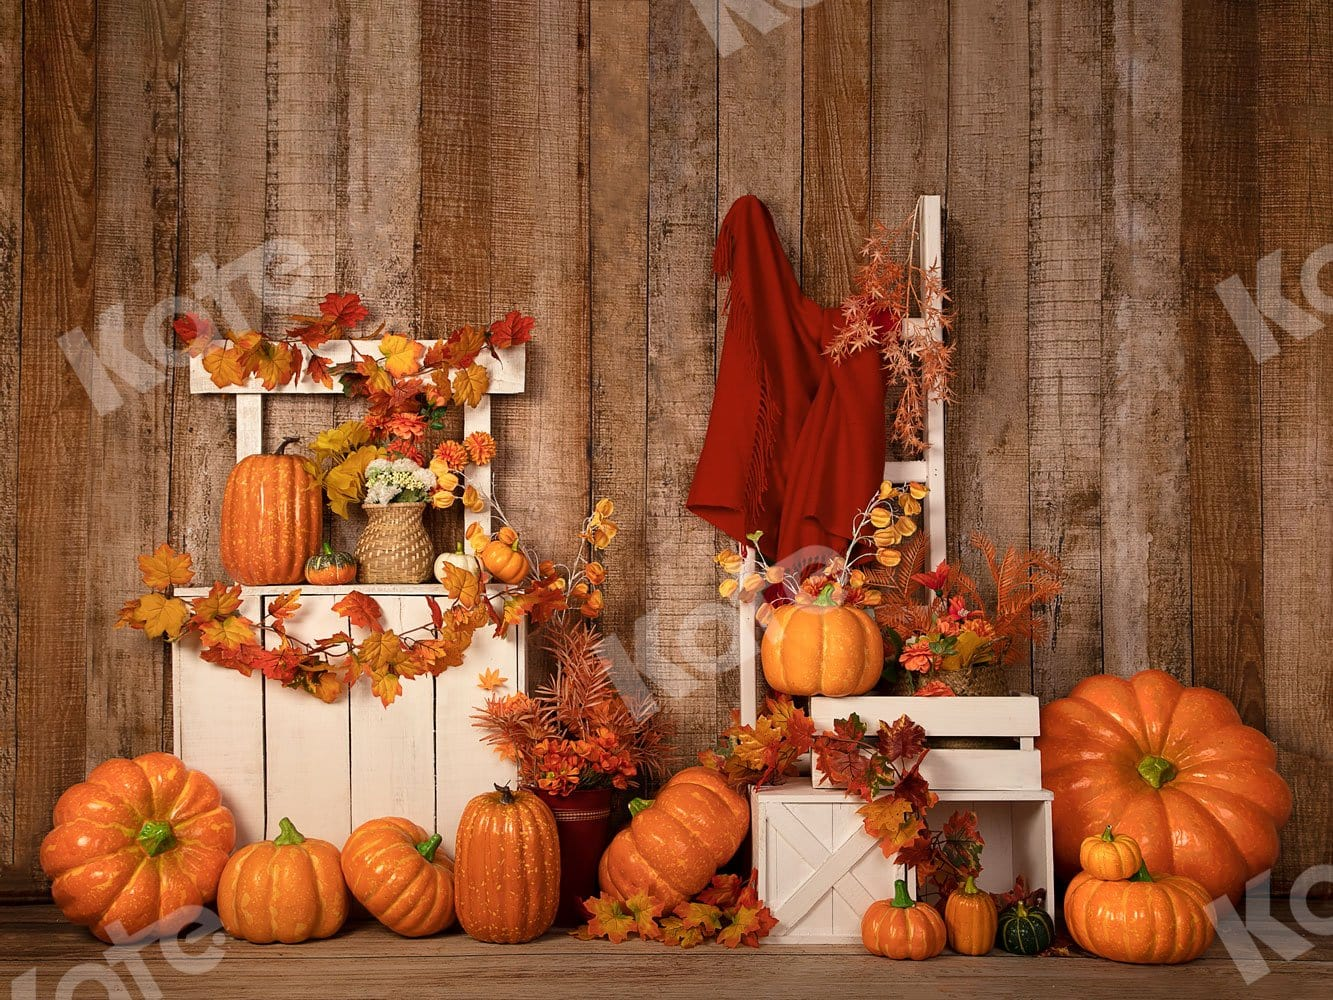 Load image into Gallery viewer, Kate Autumn/Thanksgiving Halloween Pumpkins Stand Backdrop Designed by Jia Chan Photography